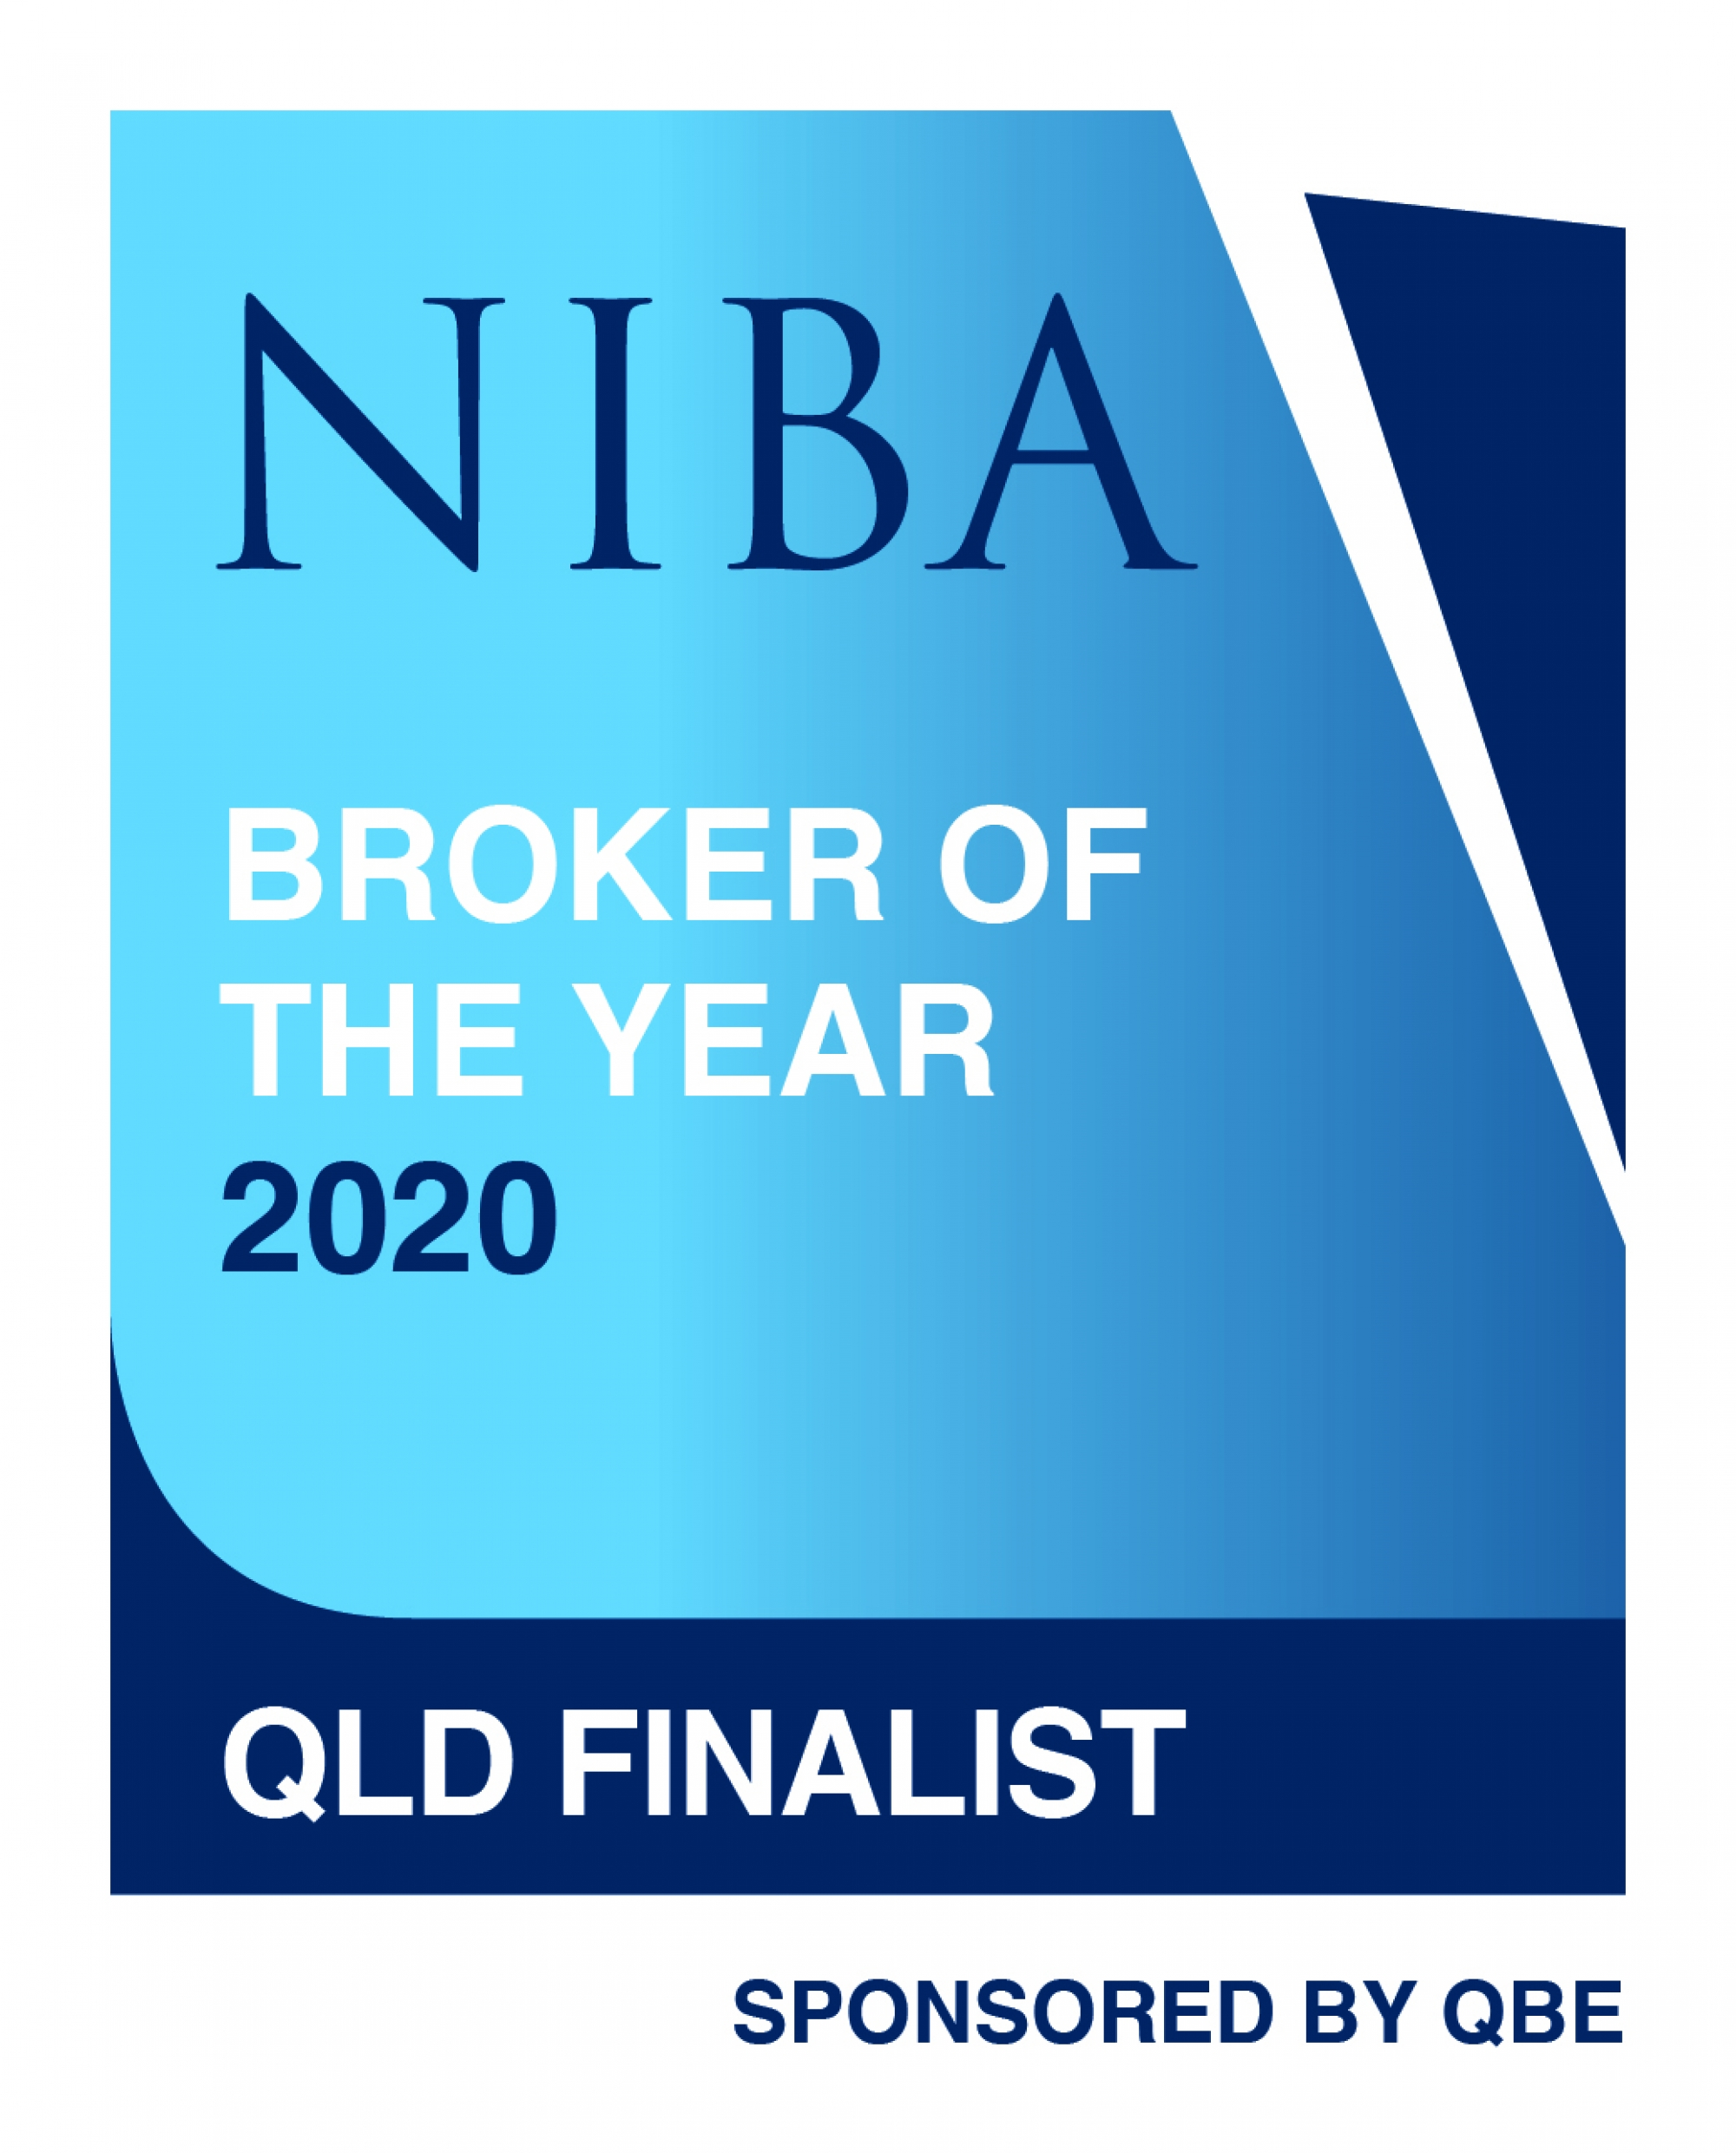 2020 NIBA Broker of the Year QLD Finalist